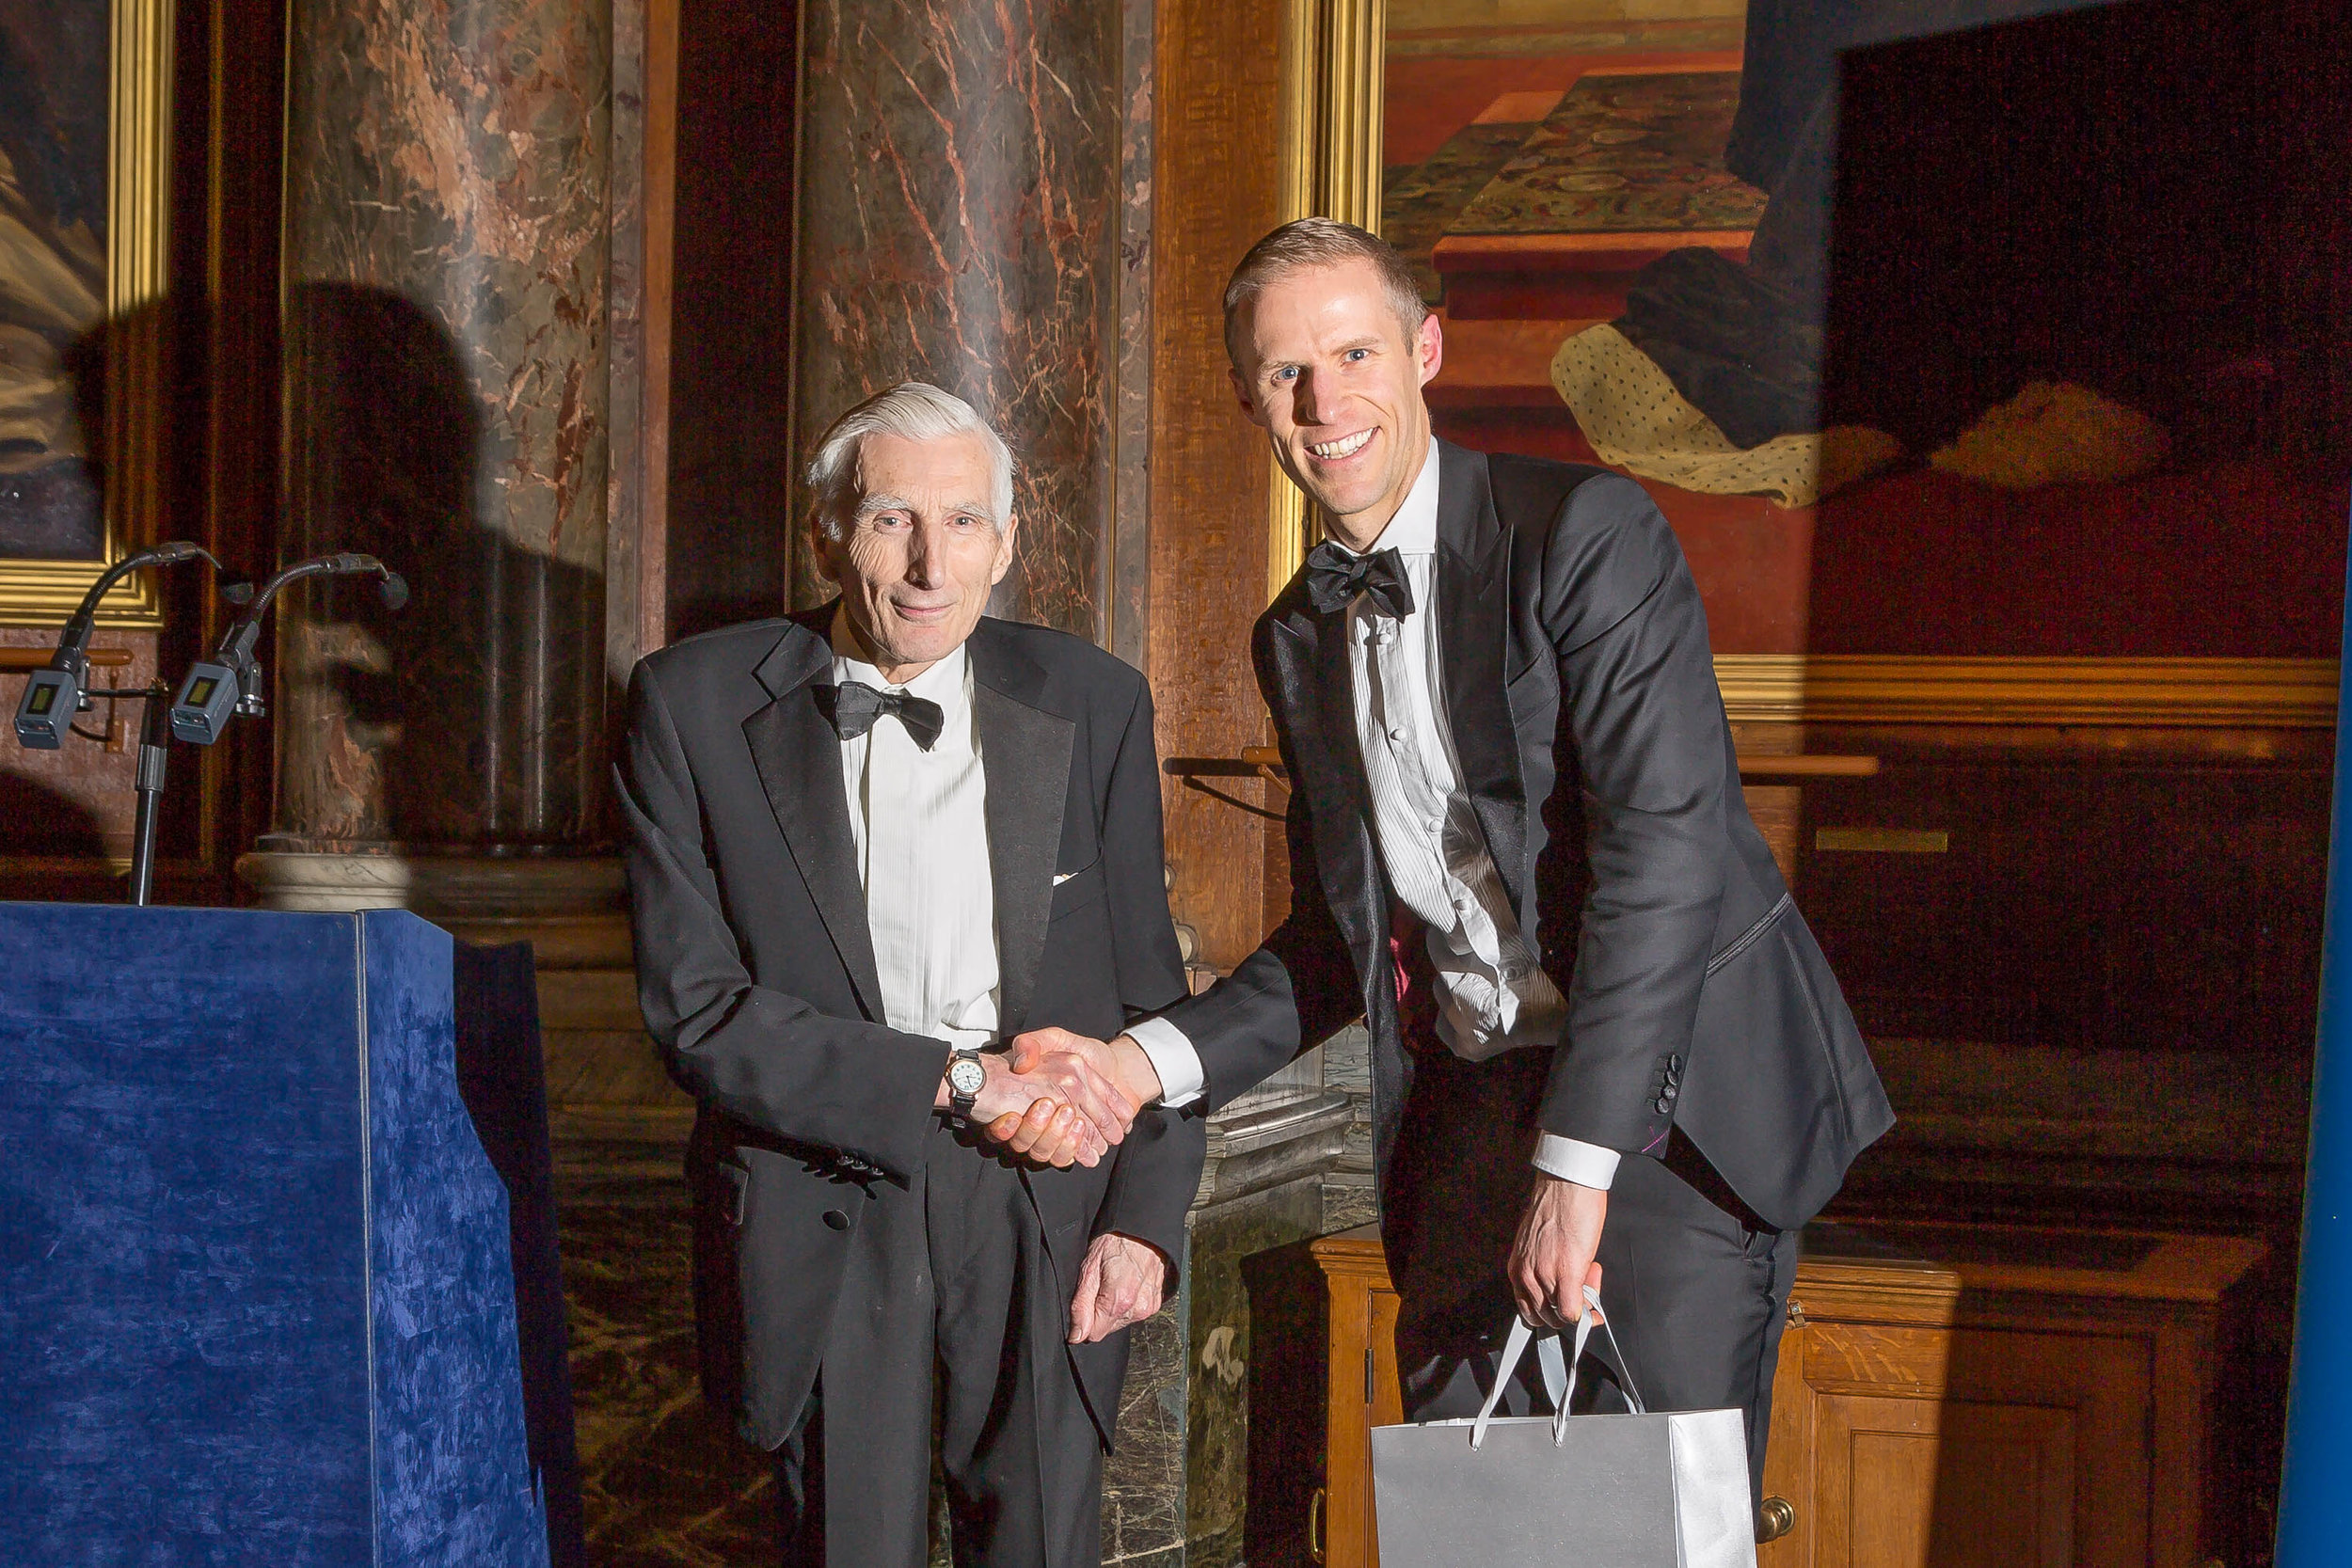 Steve receiving the award from Astronomer Royal Lord Martin Rees